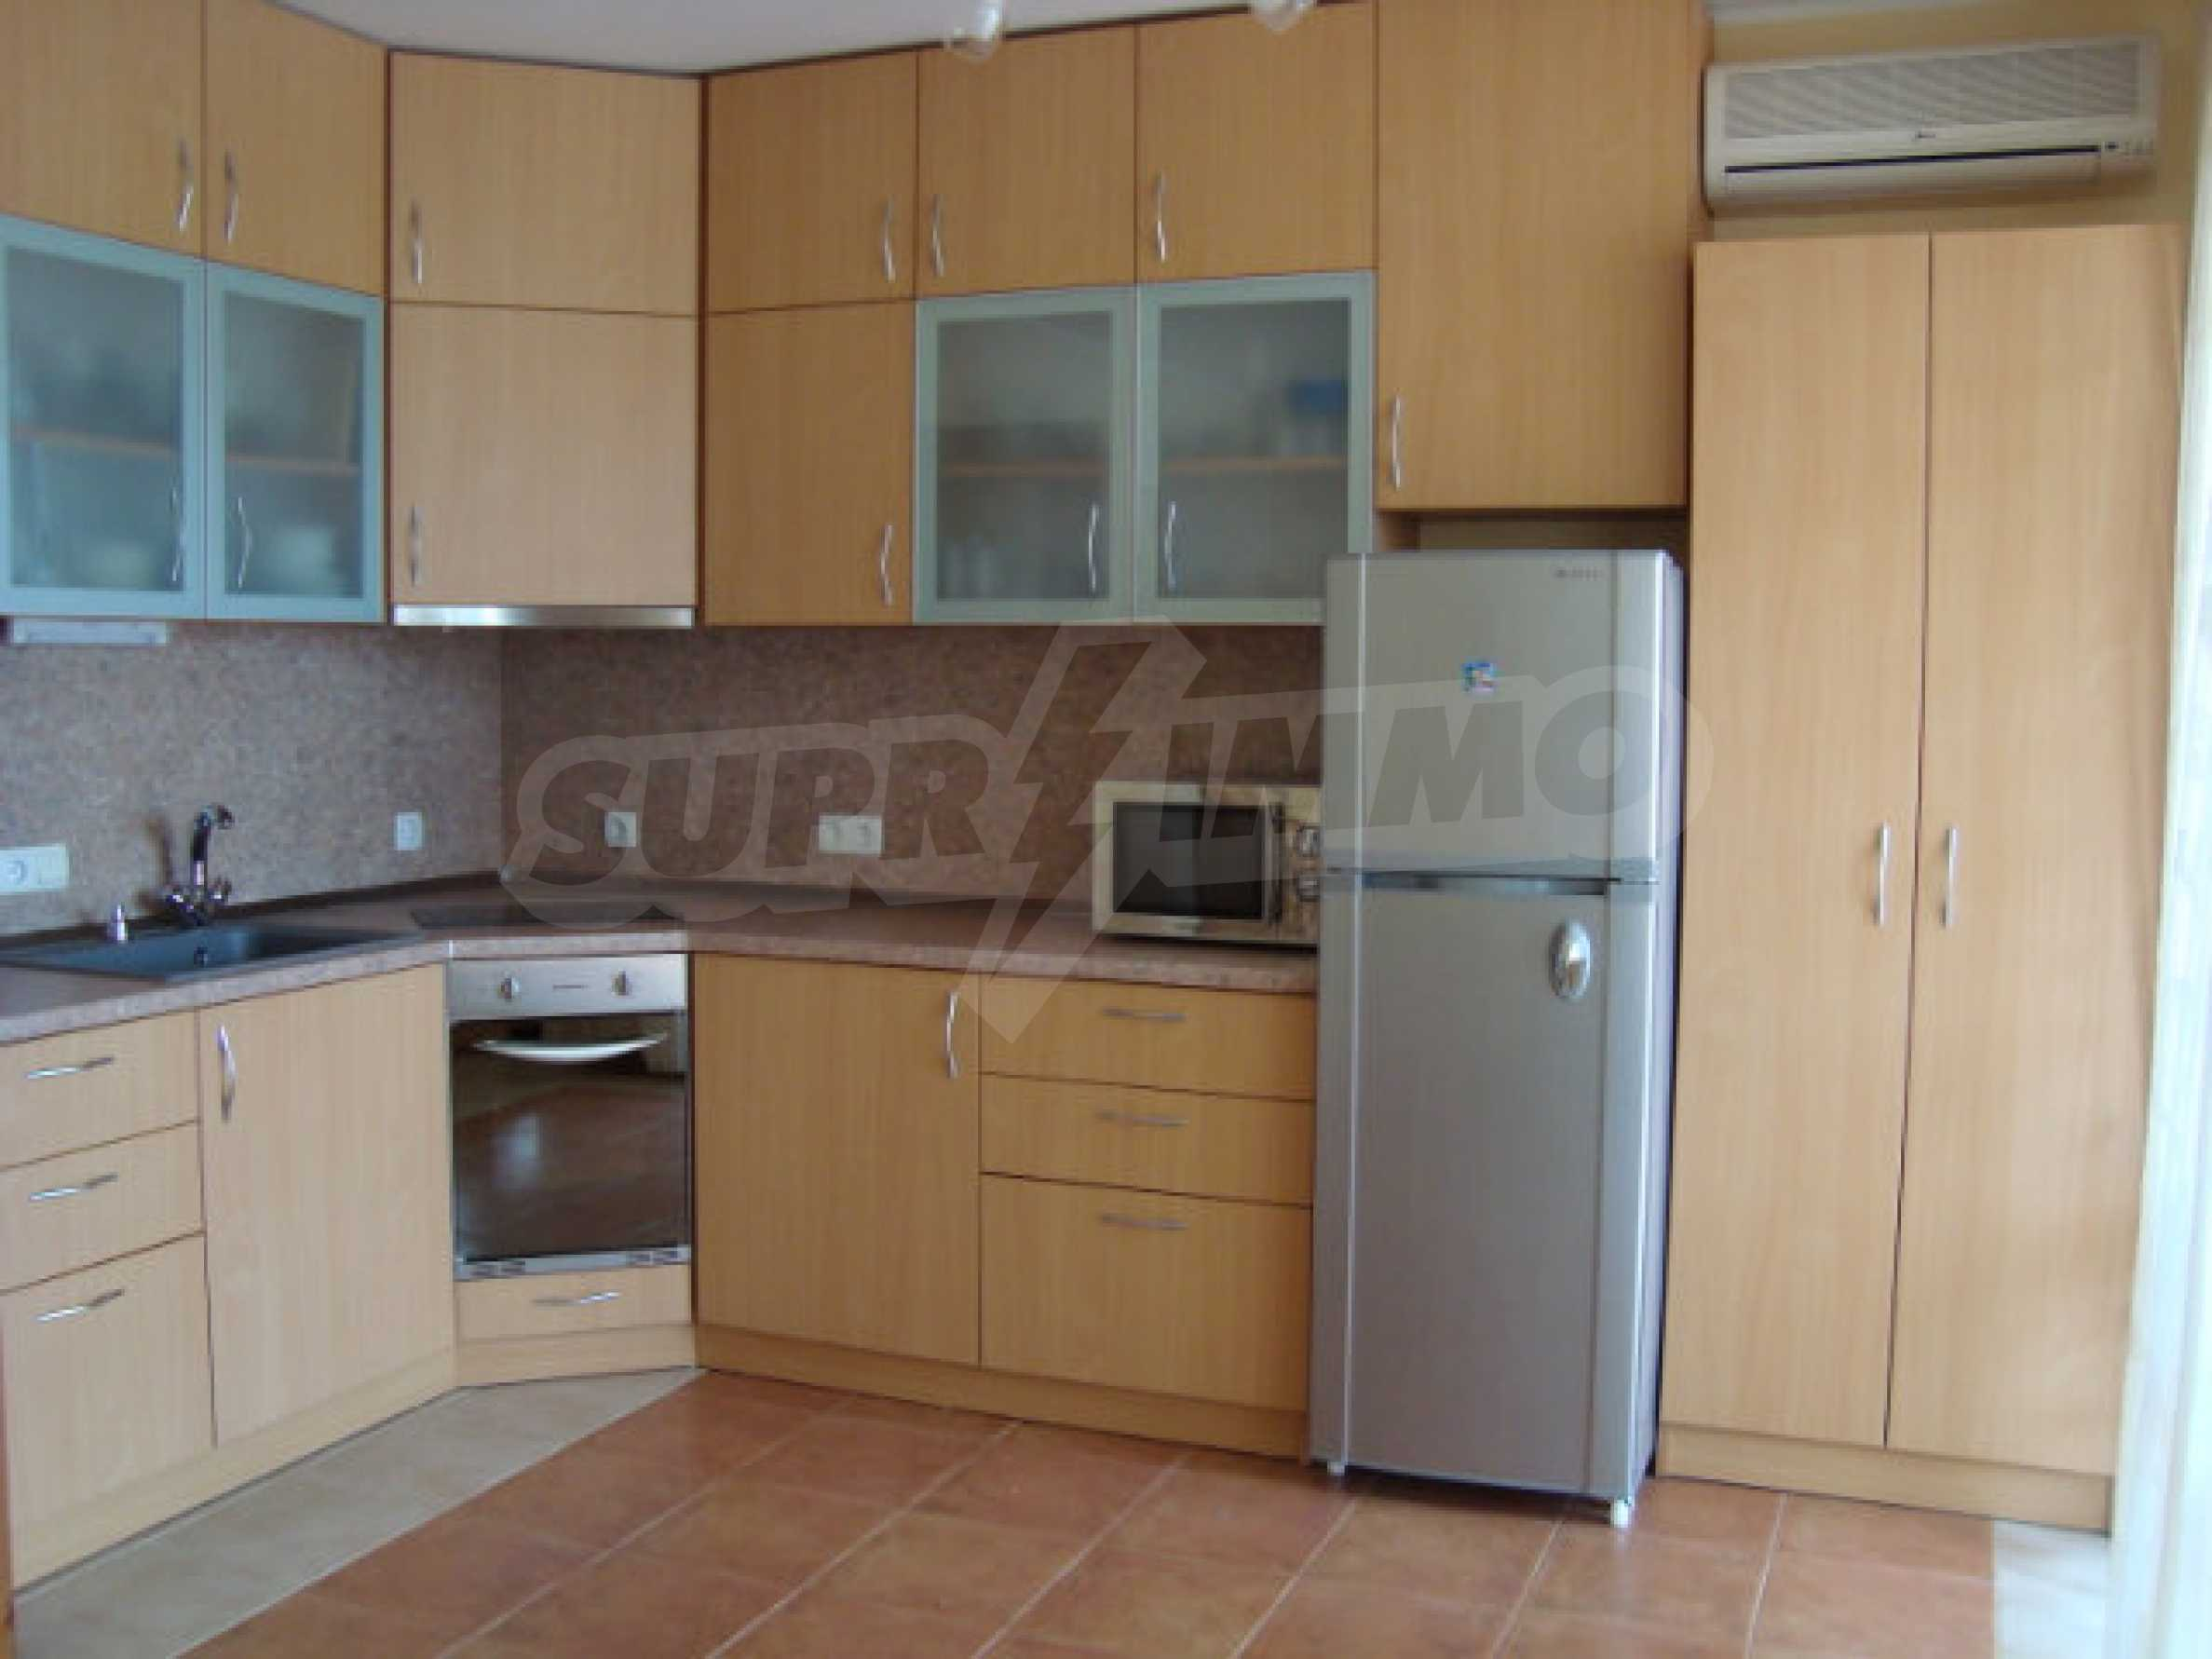 Two-bedroom apartment in Saint Nicholas complex in Chernomorets 4